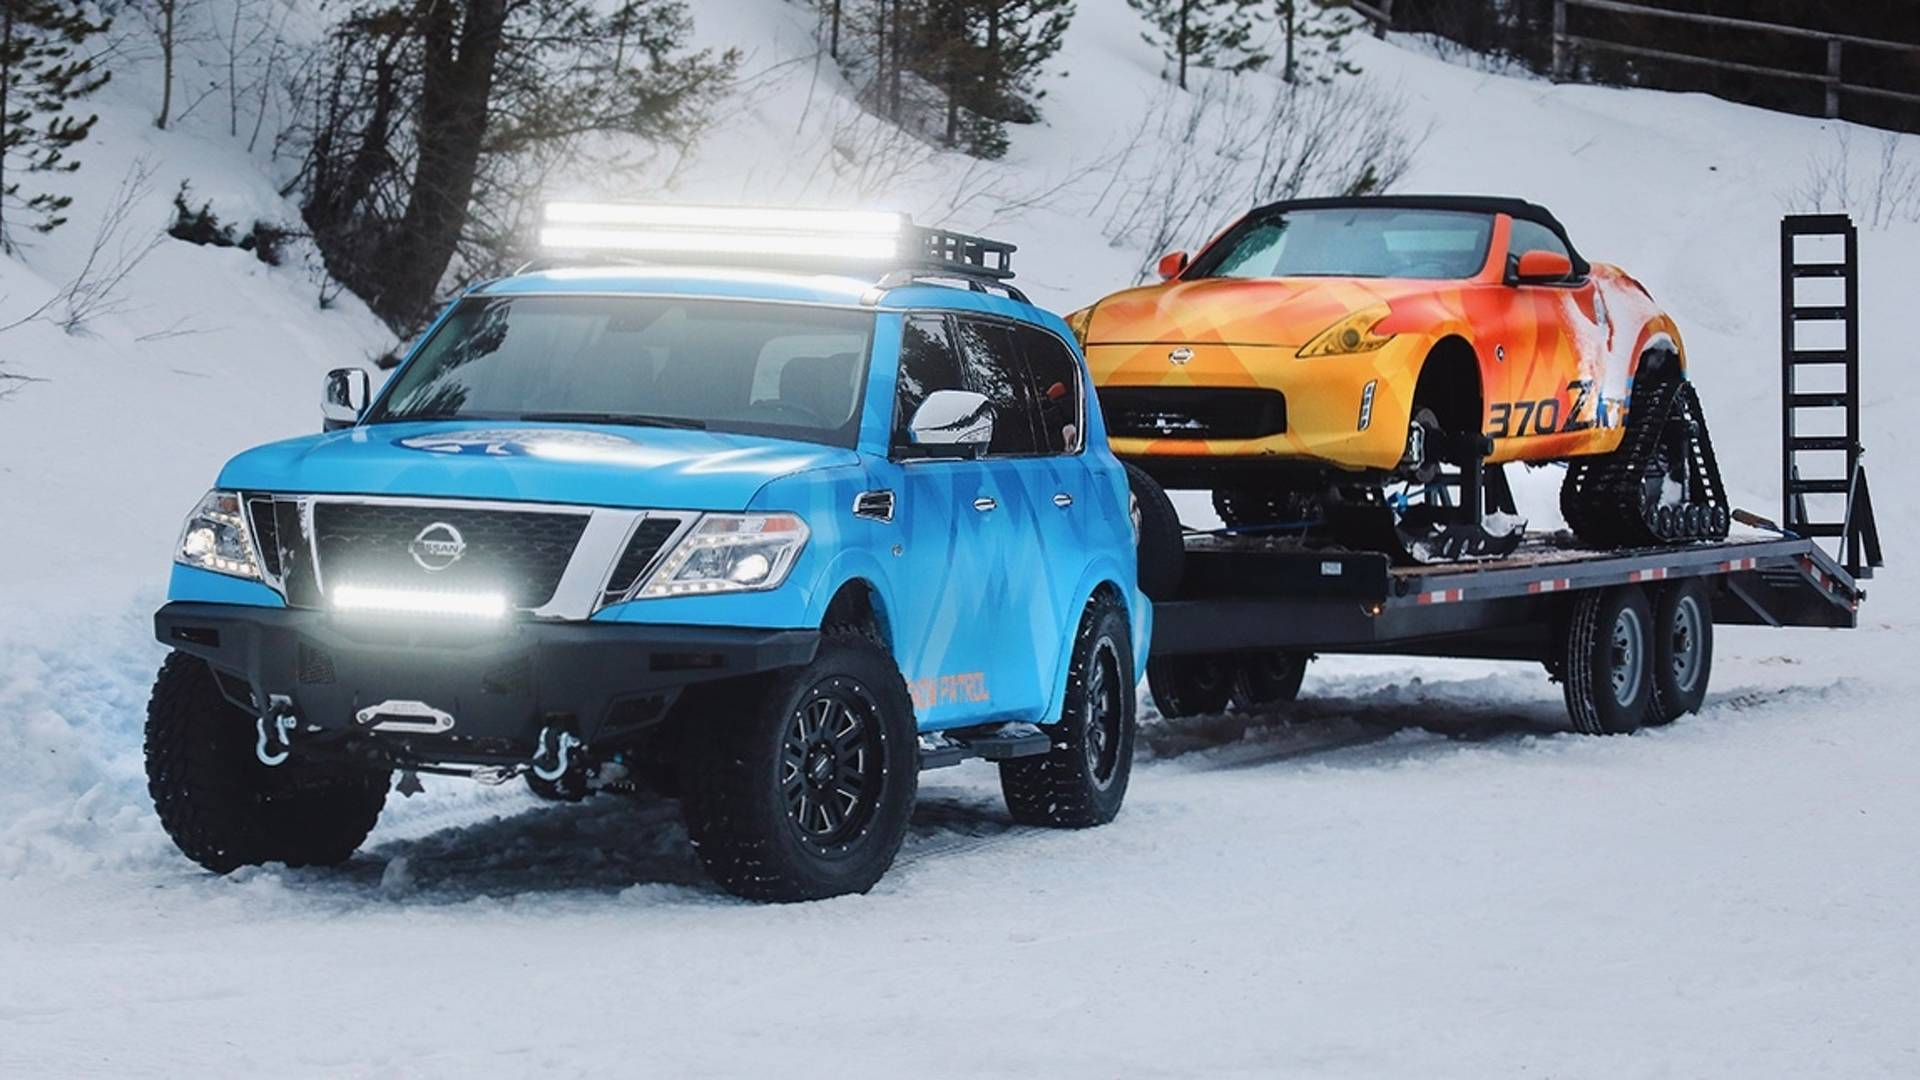 Nissan and Nissan Armada Snow Patrol (3)